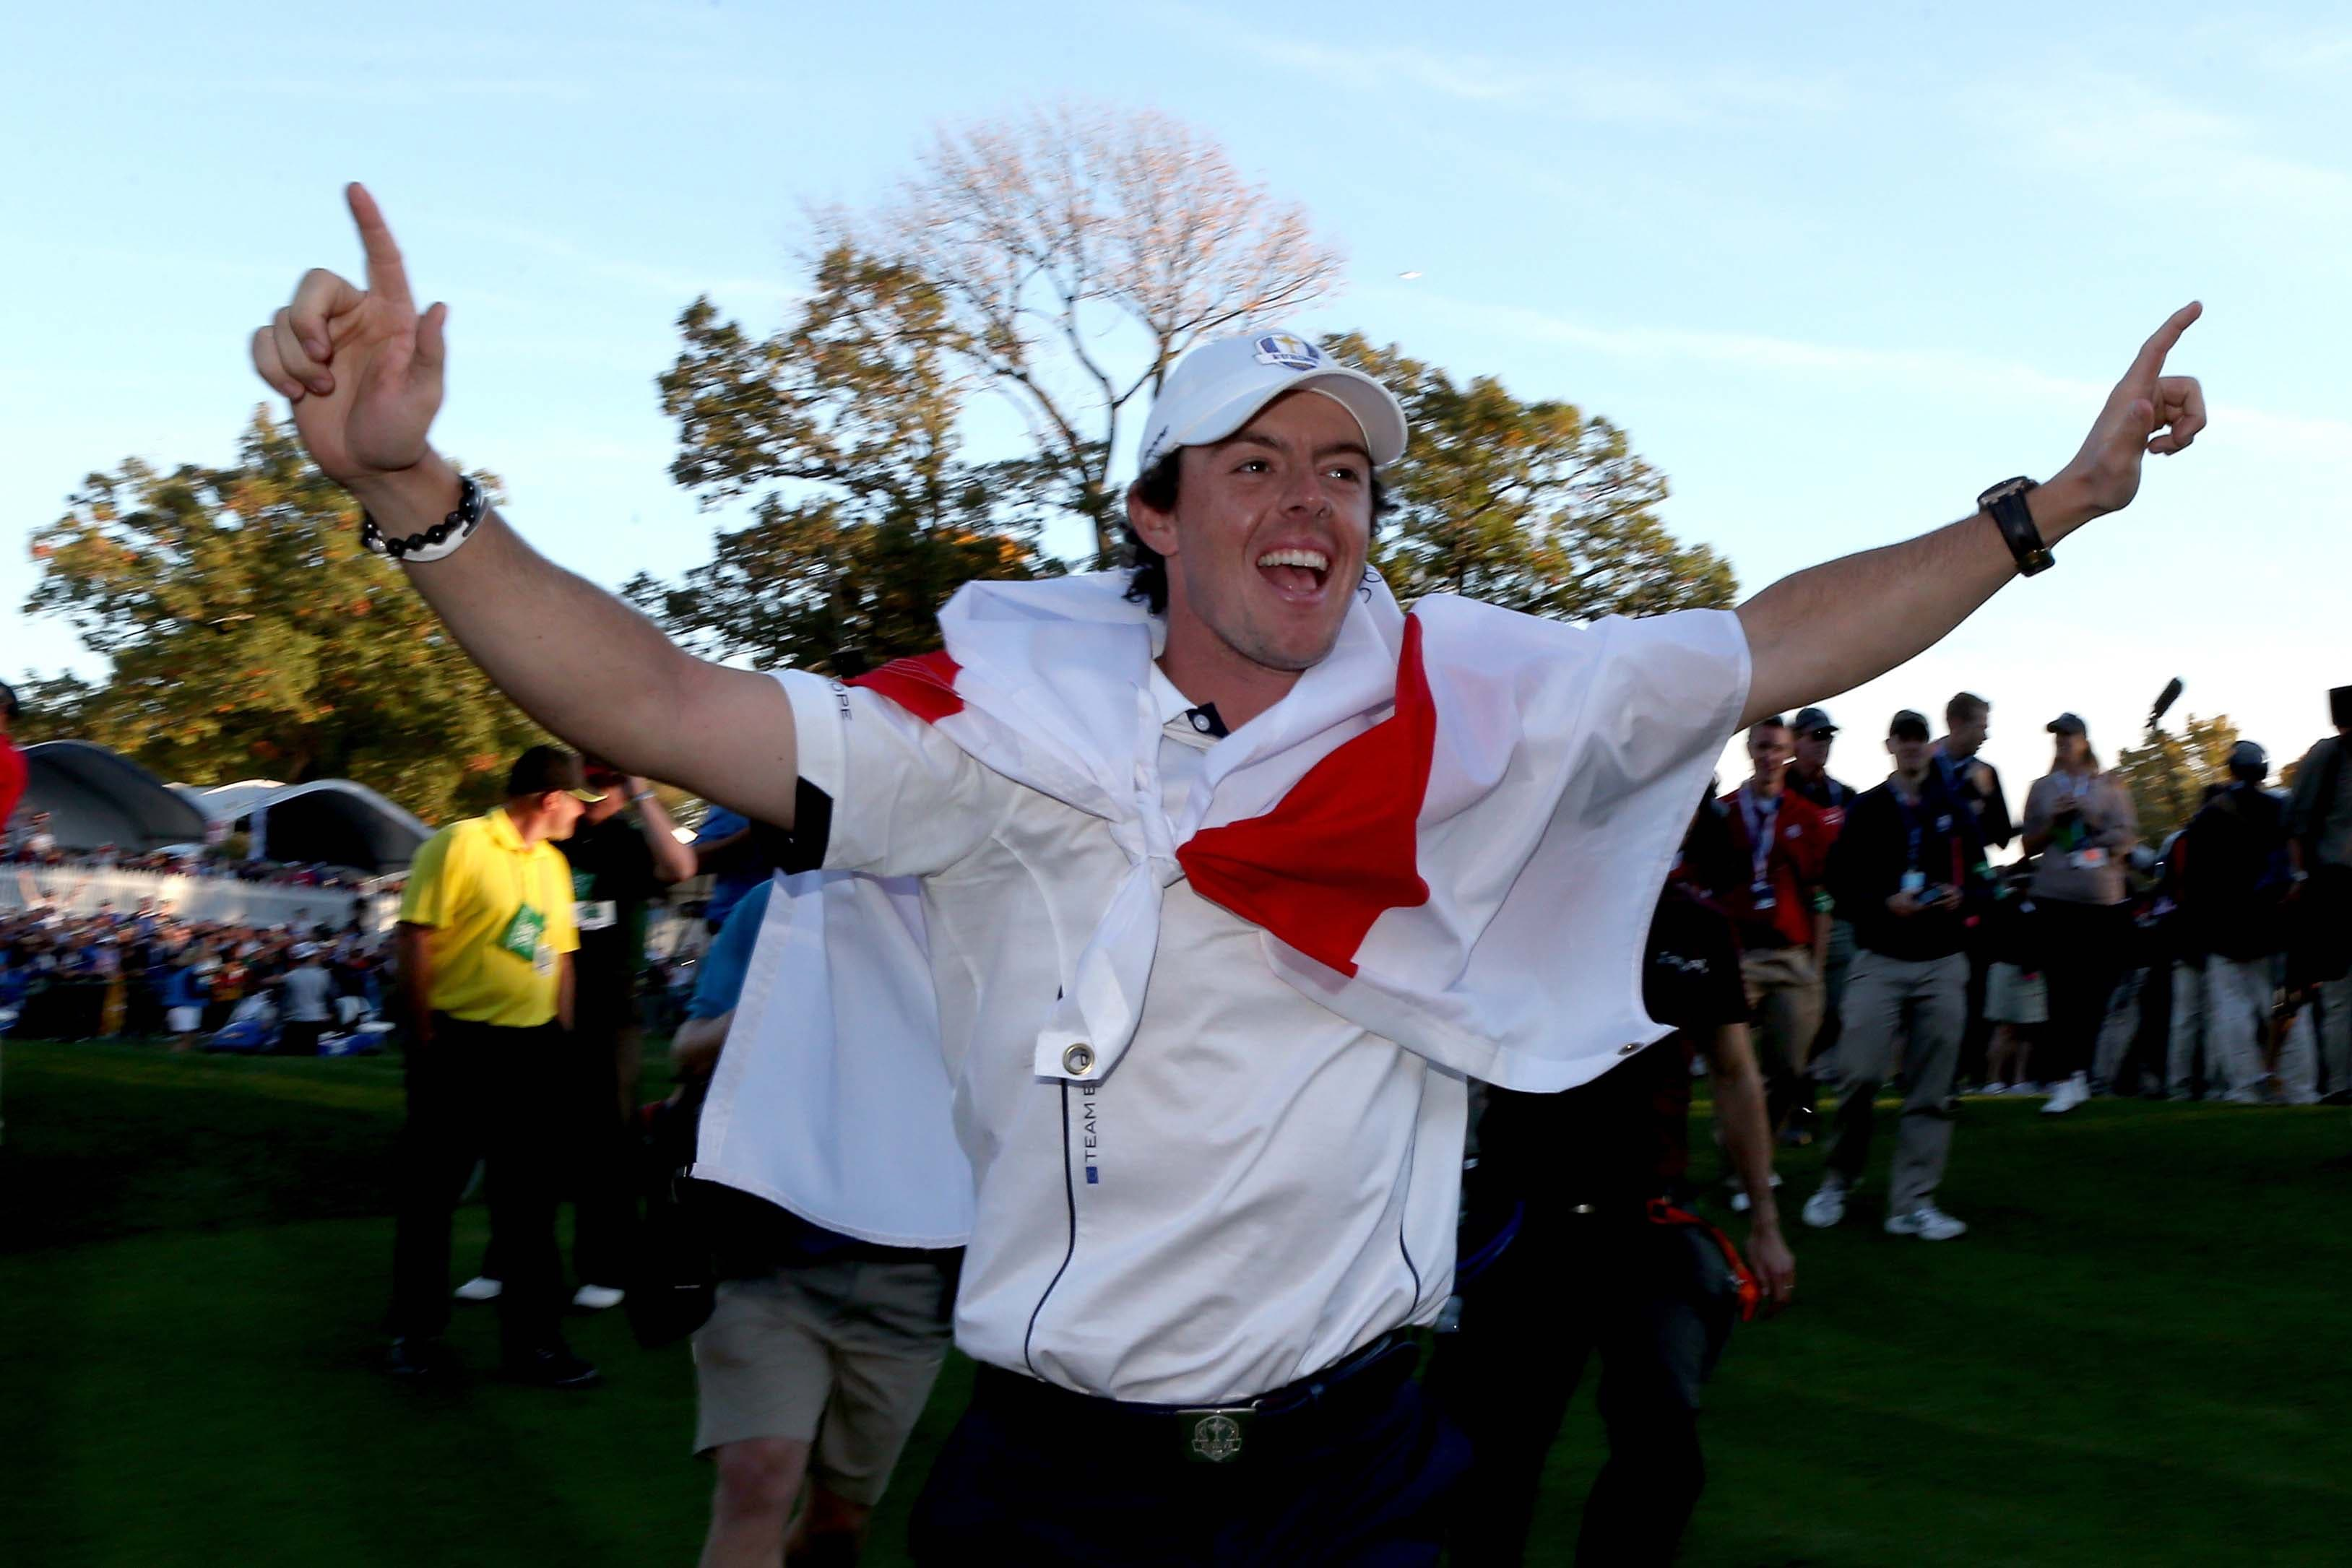 Rory McIlroy at the 2012 Ryder Cup